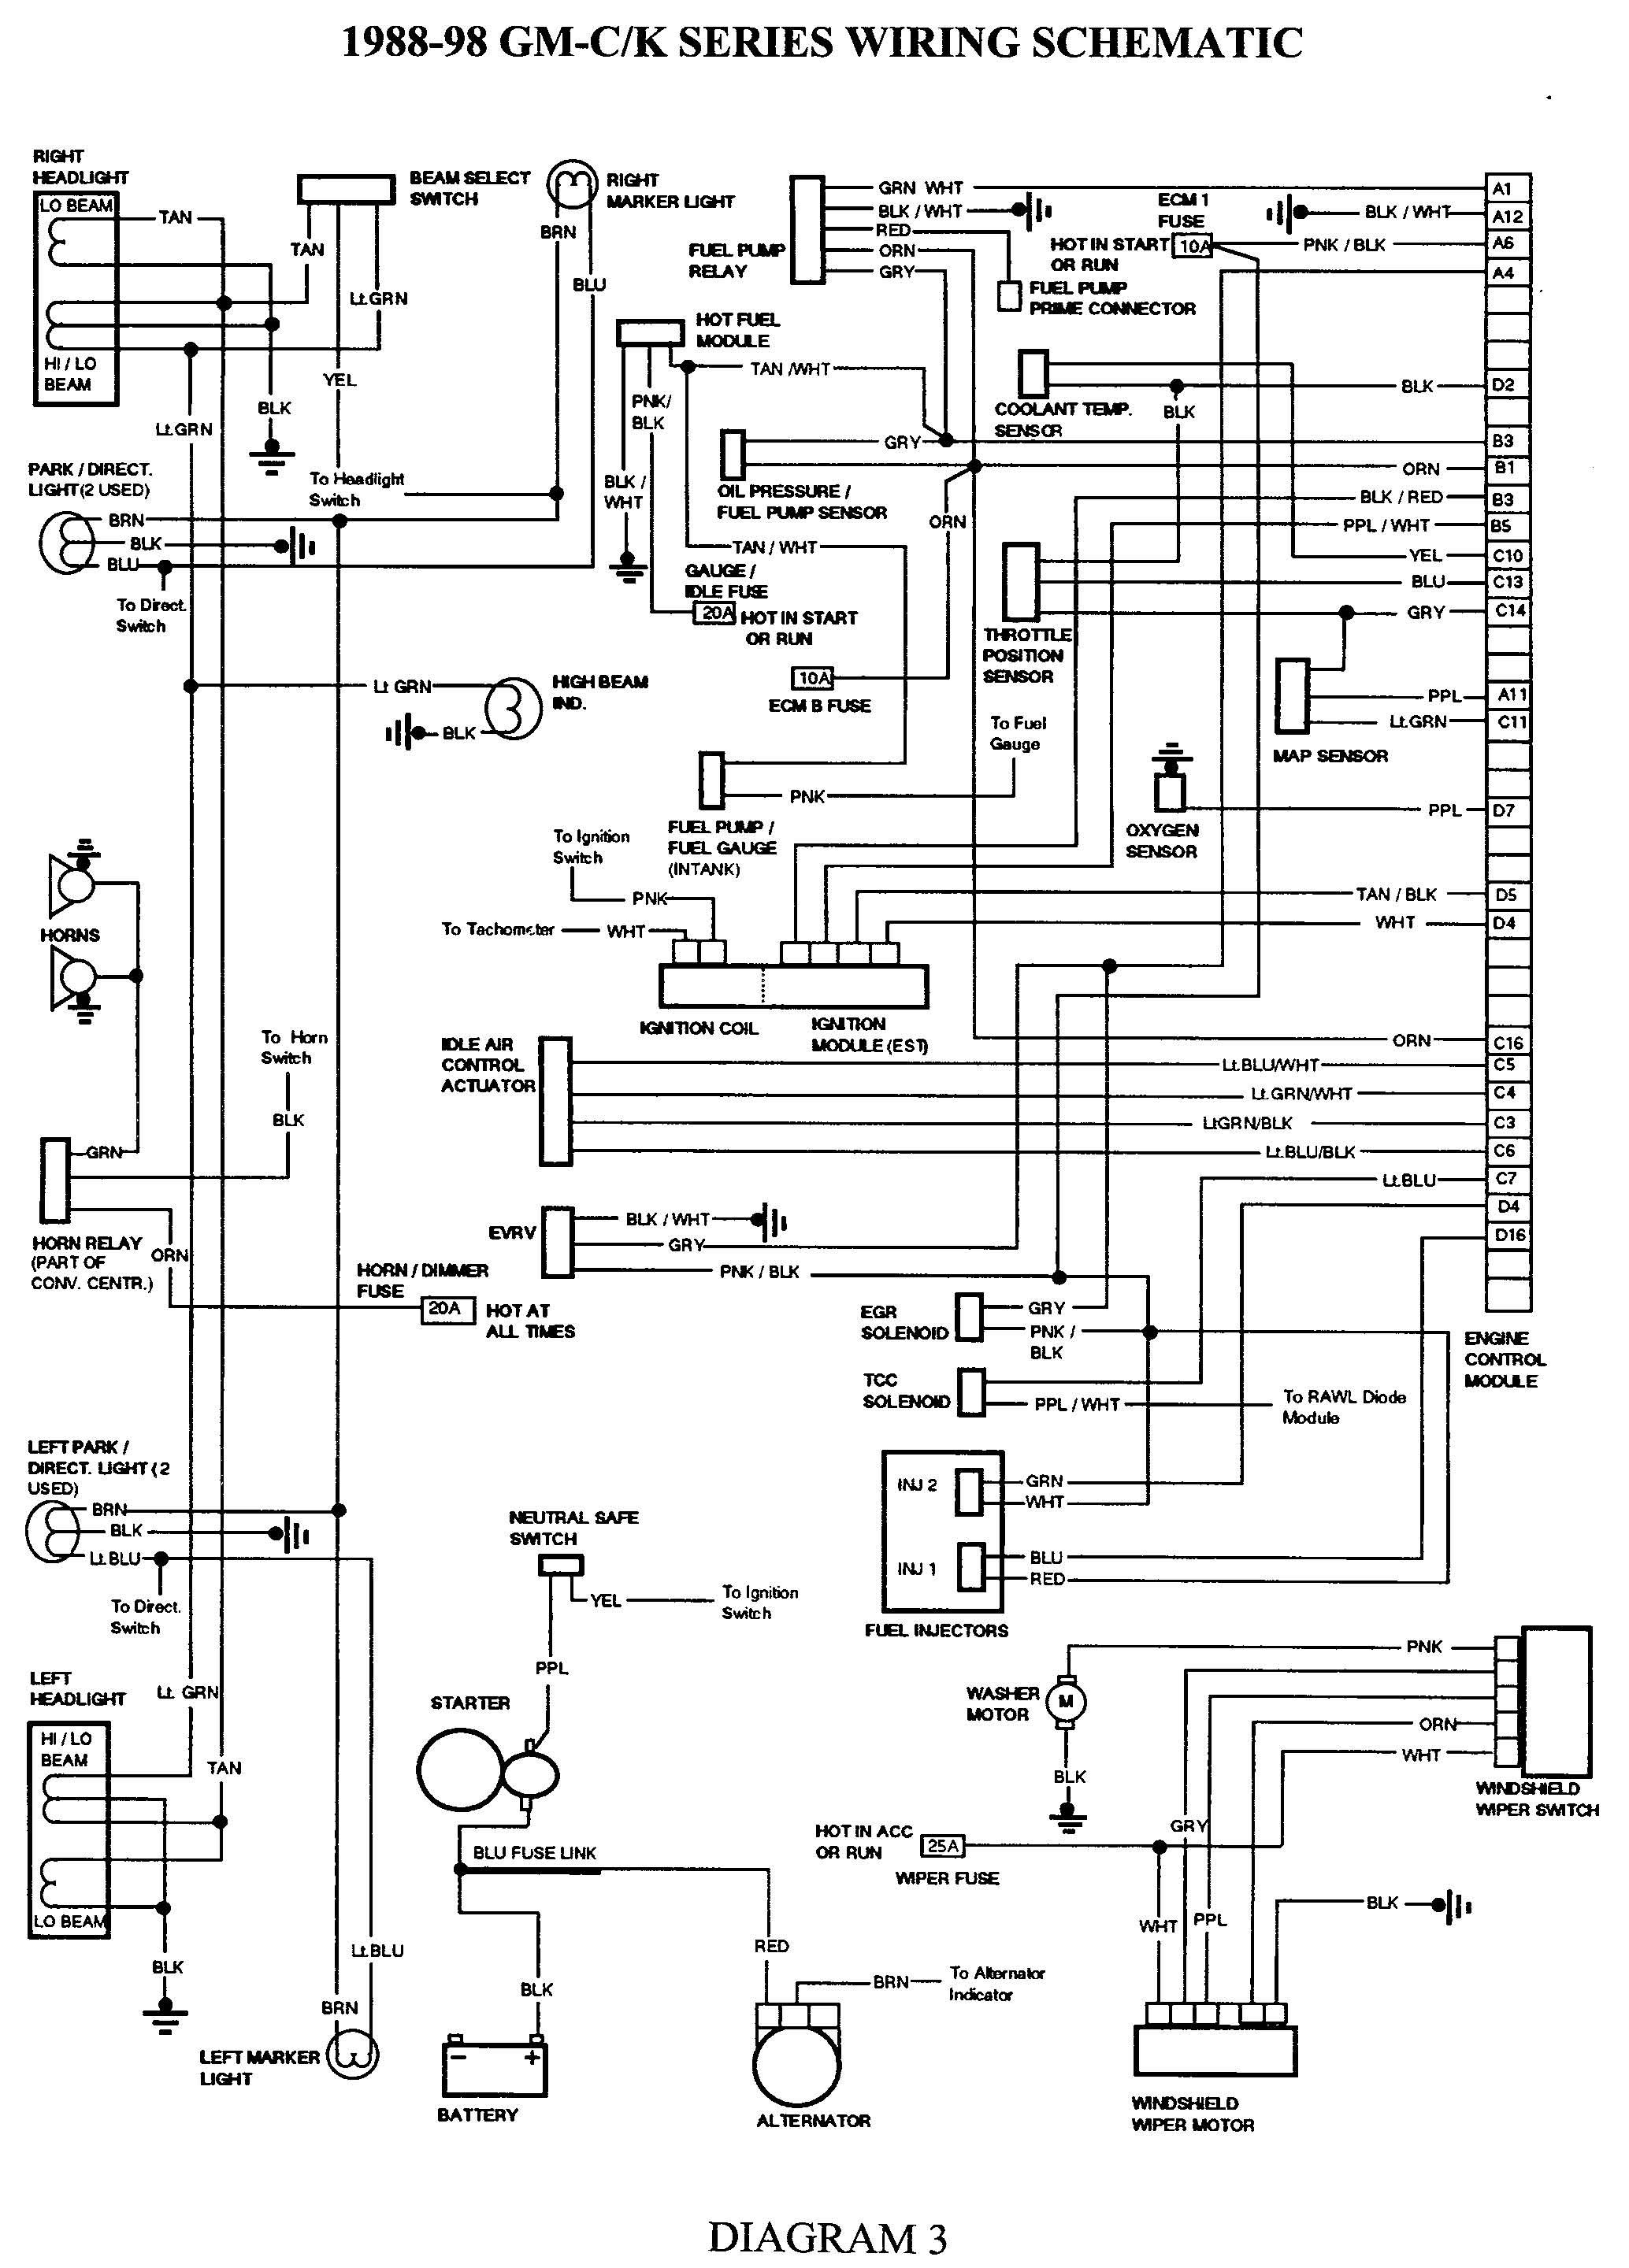 fully automatic washing machine wiring diagram [ 2068 x 2880 Pixel ]